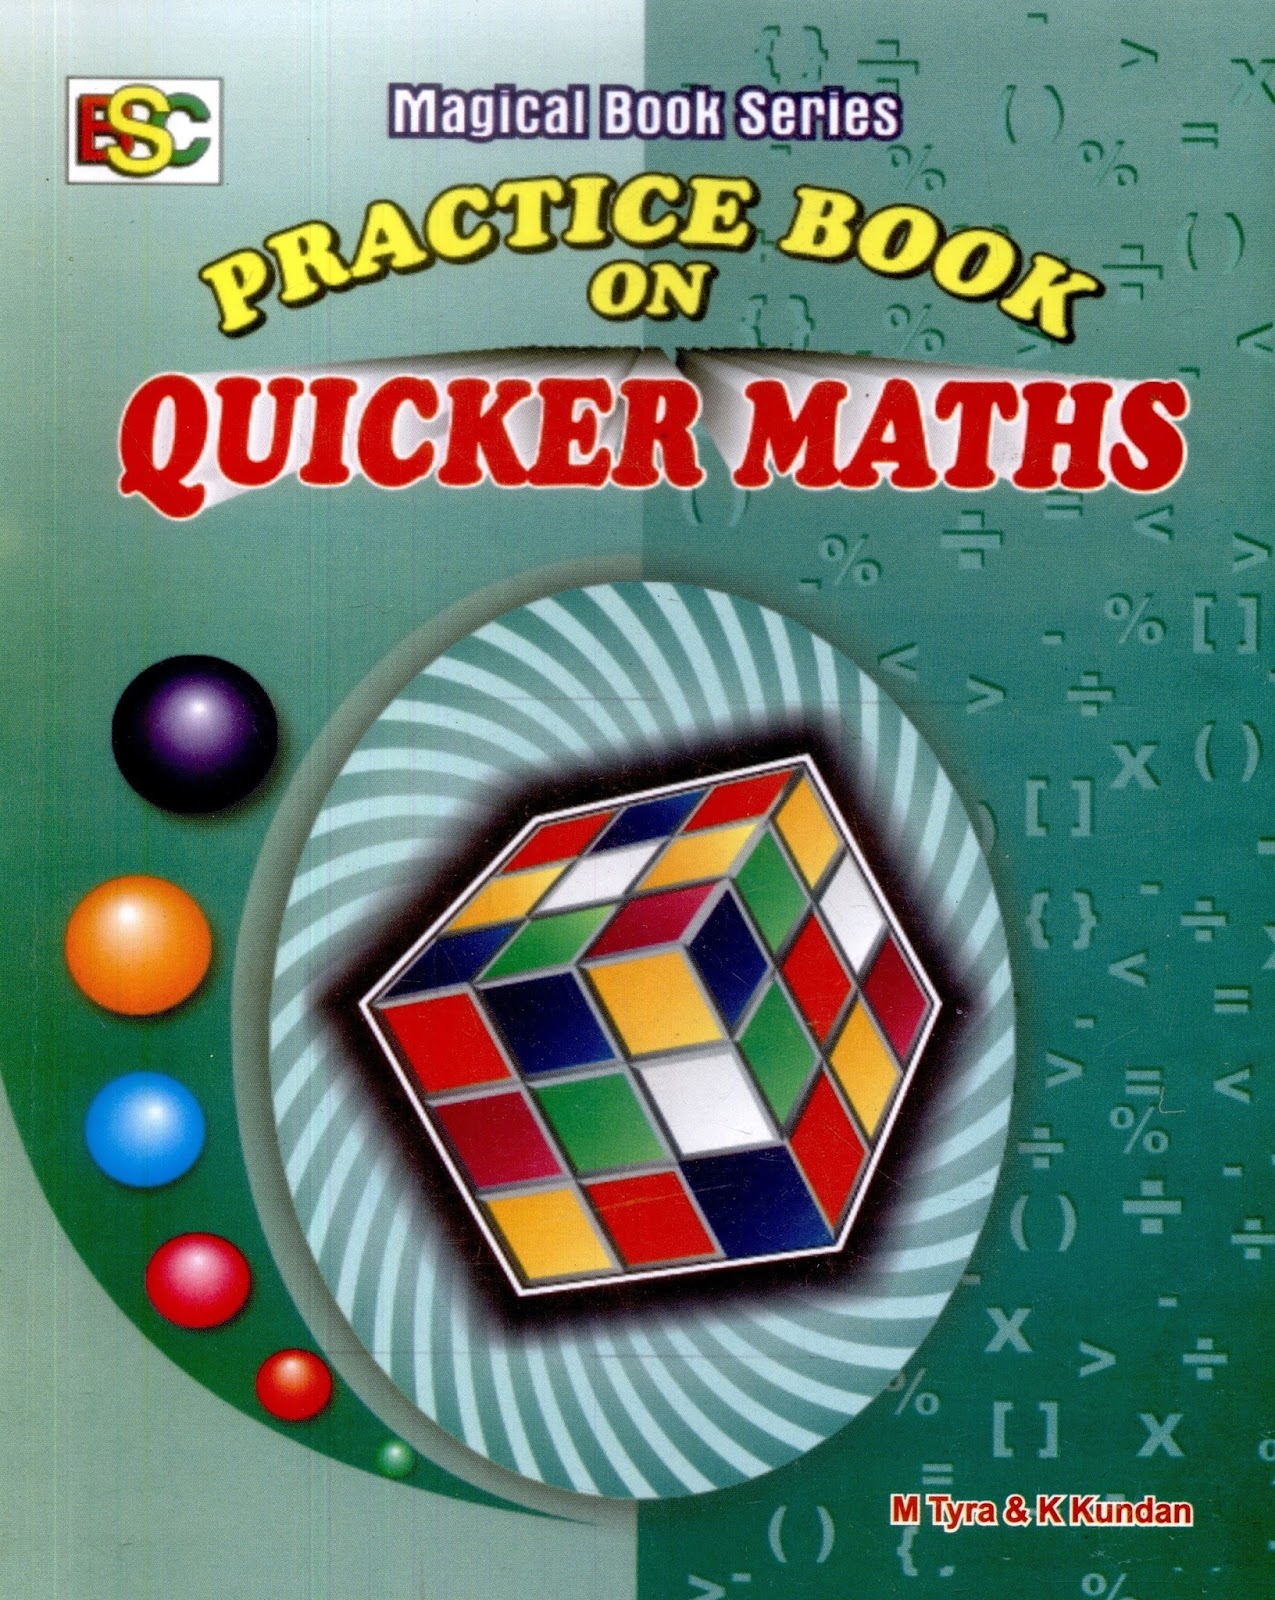 Free Download PDF of Quicker Maths By M.Tyra : Magical Book Series ~ .